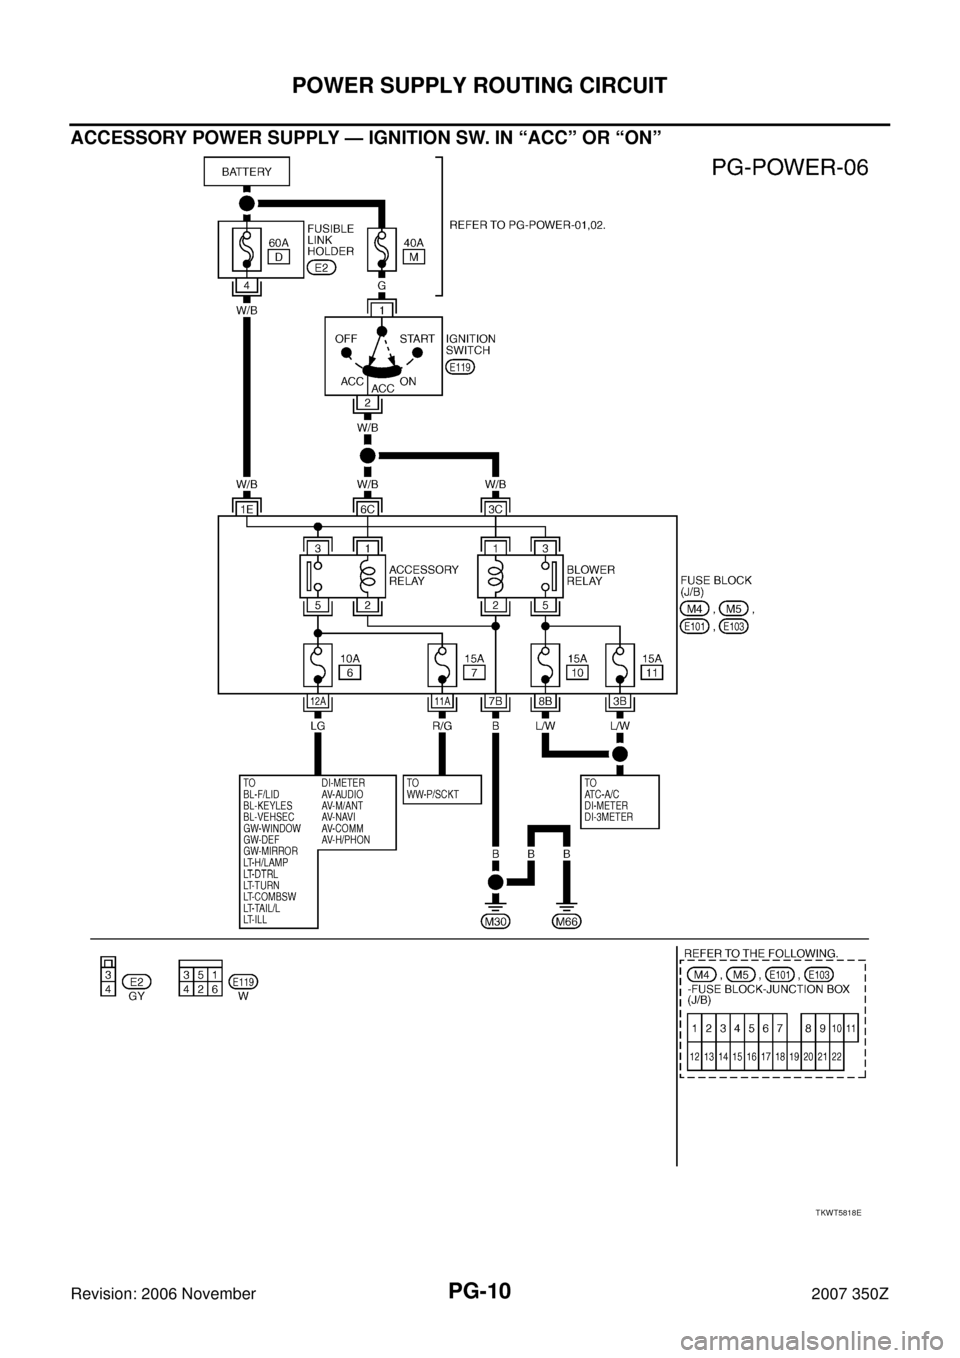 medium resolution of 67 camaro fuse block diagram data schema u2022 f250 fuse panel diagram 82 camaro fuse